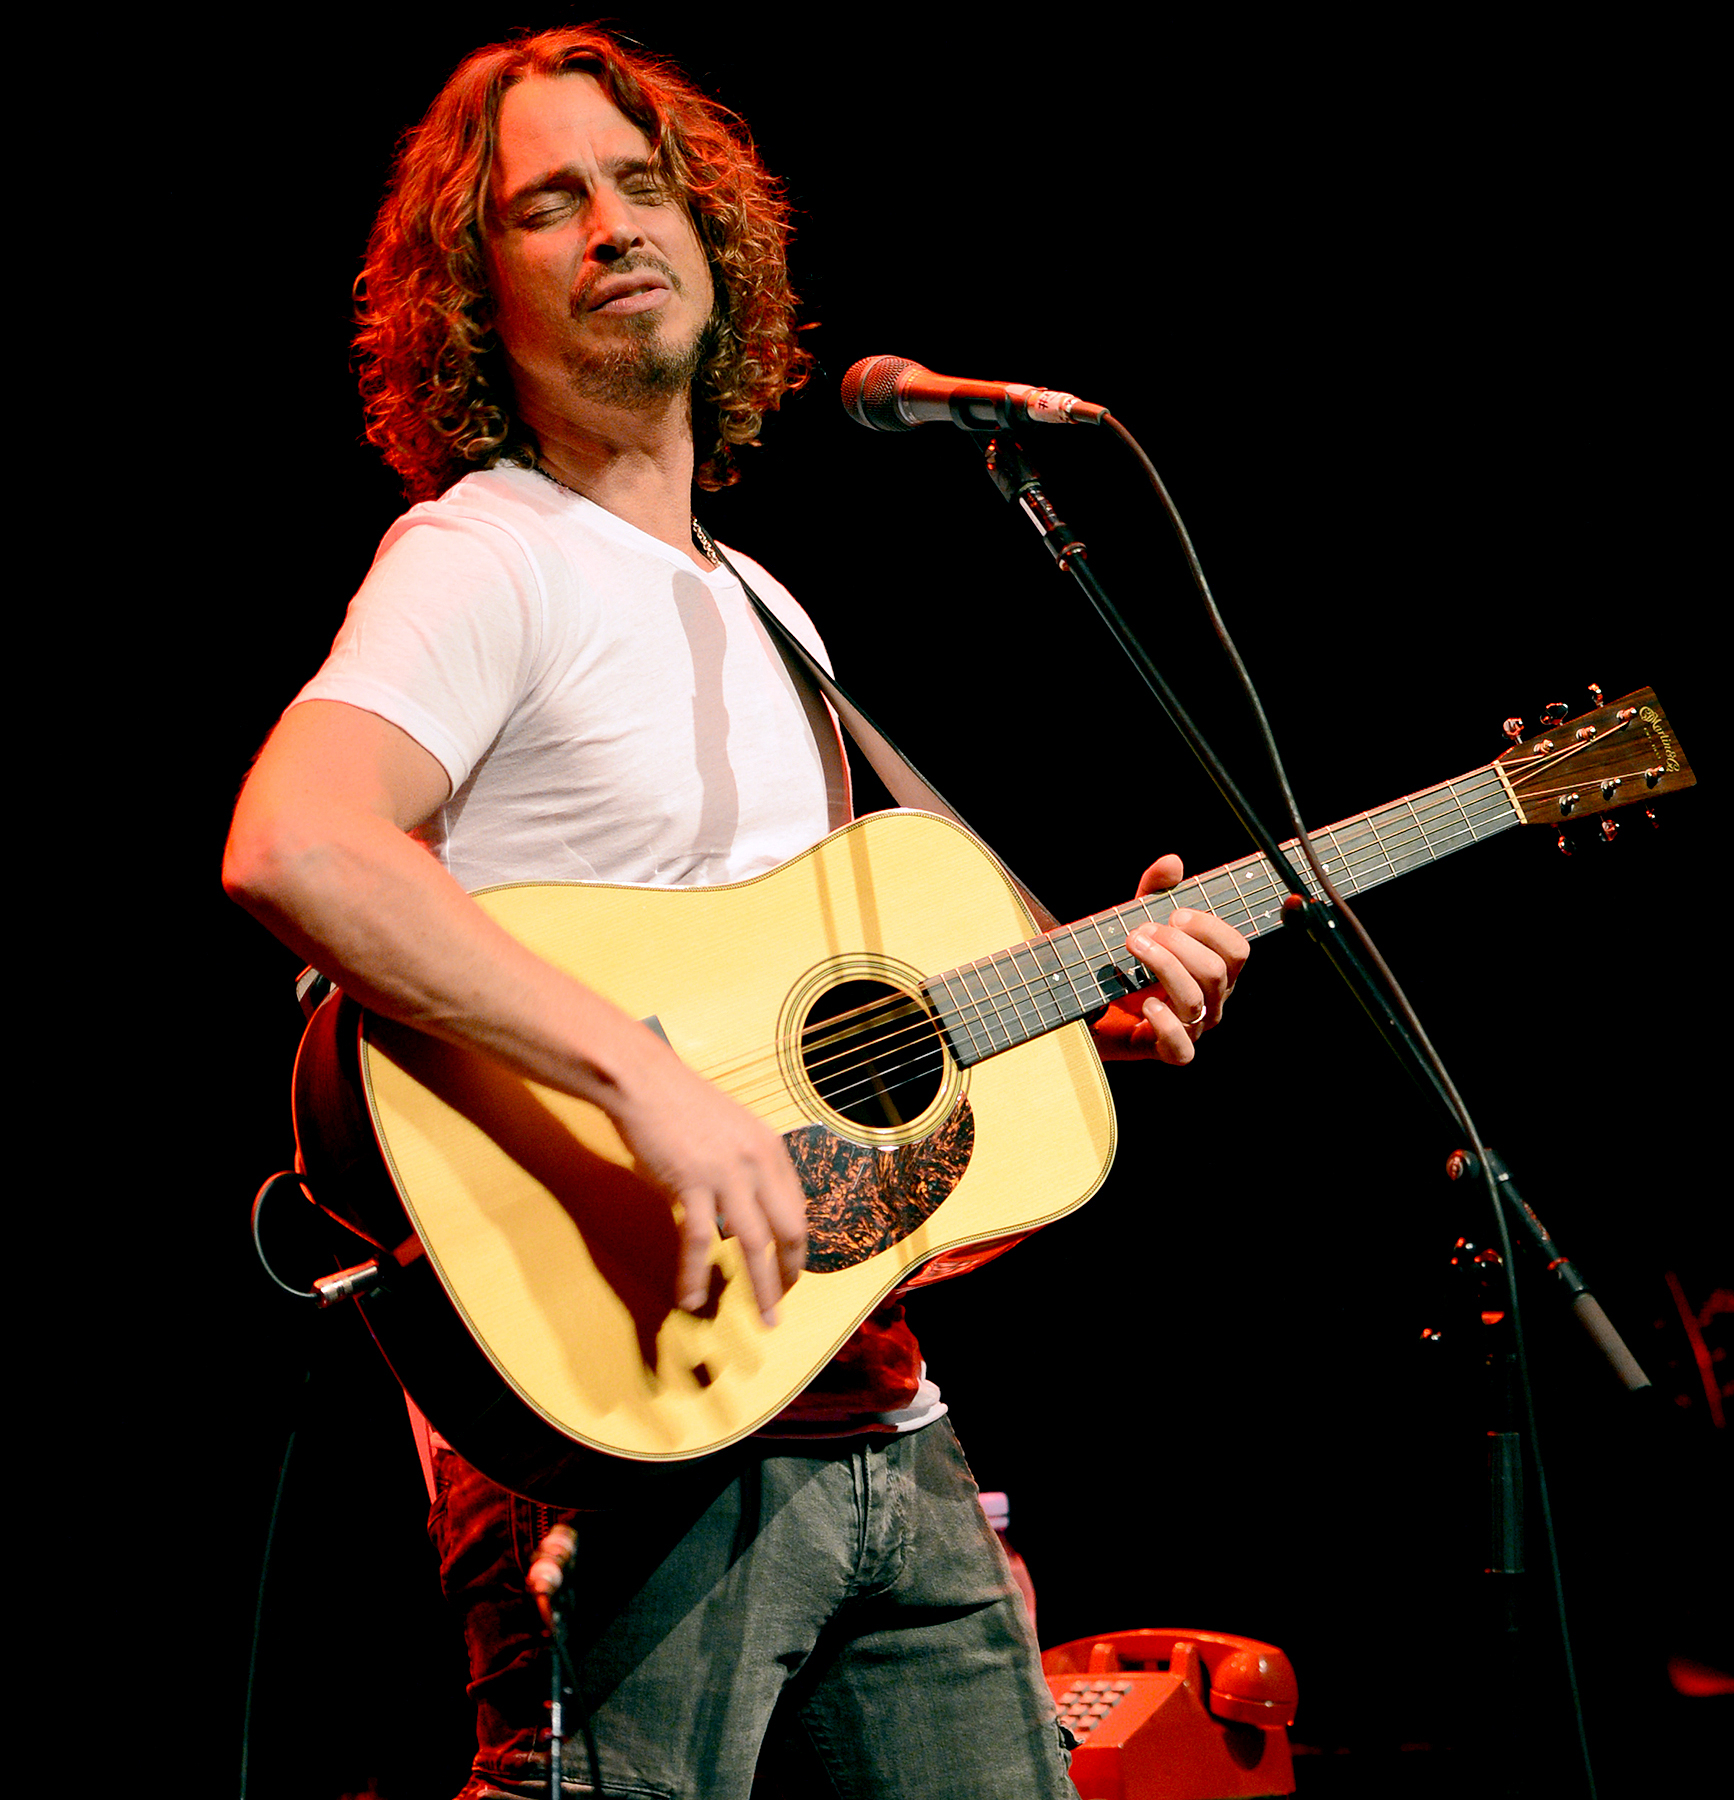 Chris Cornell performs at the Fillmore in Miami Beach in 2012.